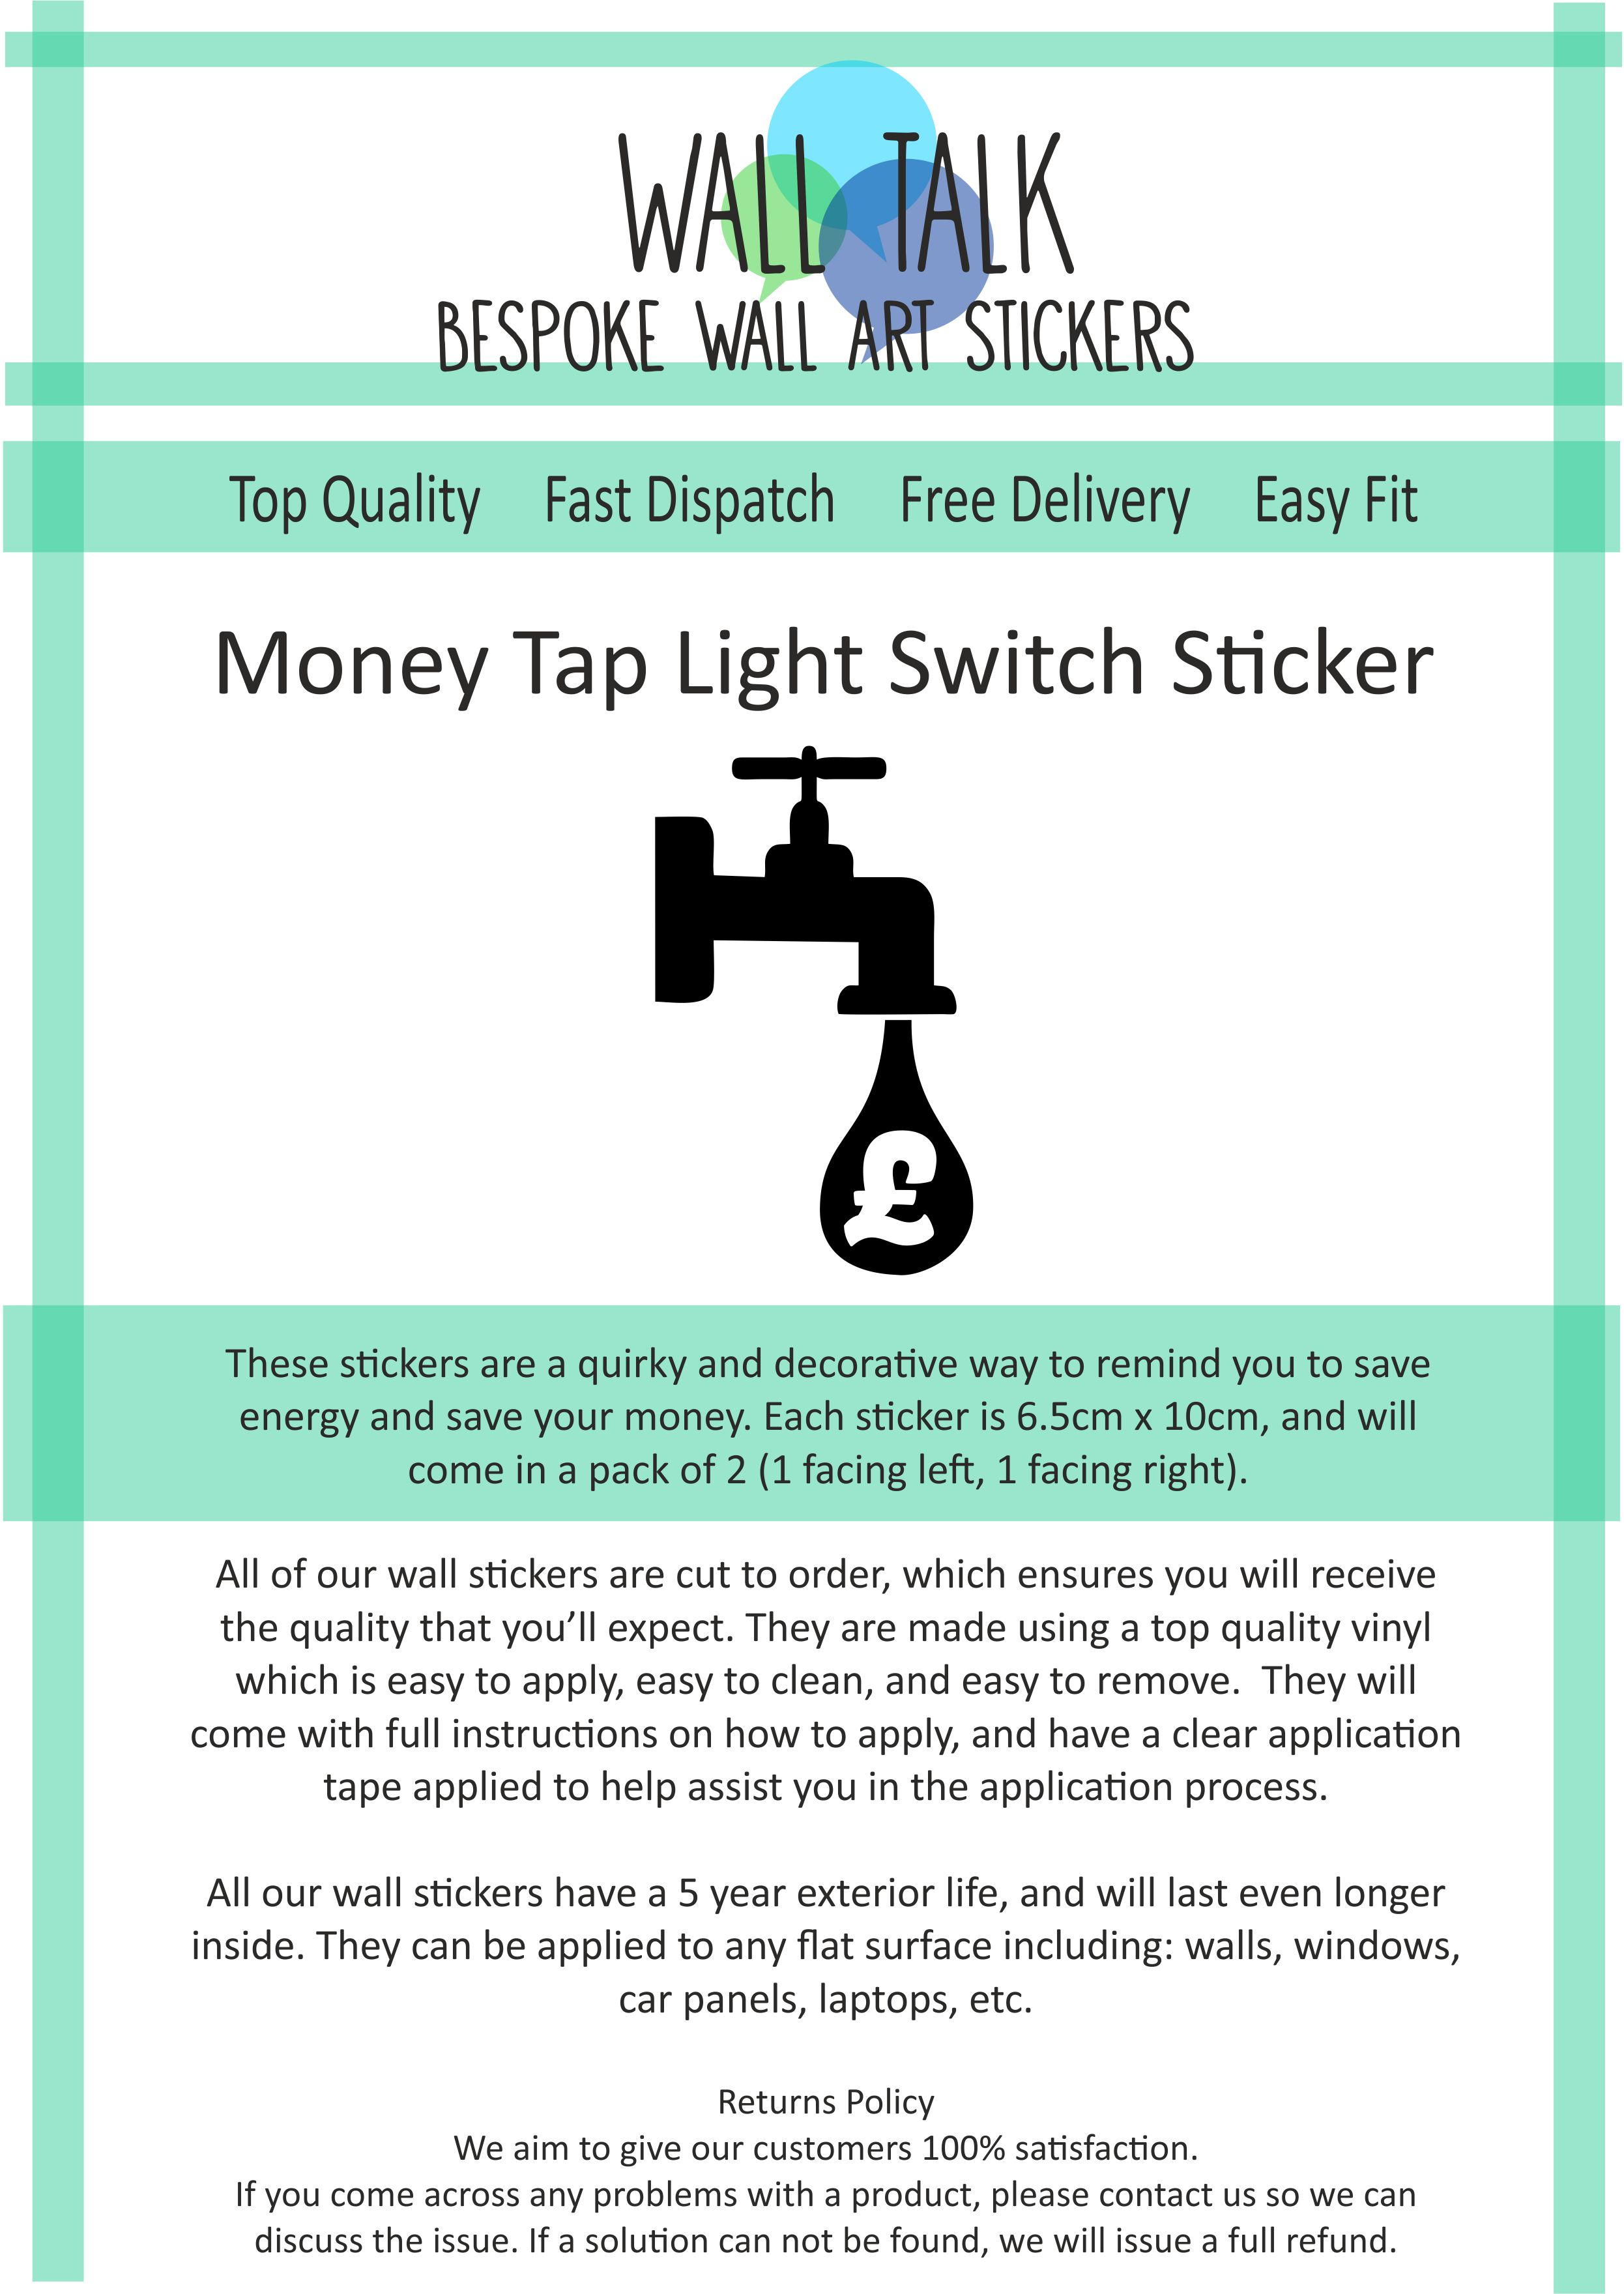 Money Tap Light Switch Sticker Save Energy Environment Bill Reminder How To Replace A Made Easy Store Categories